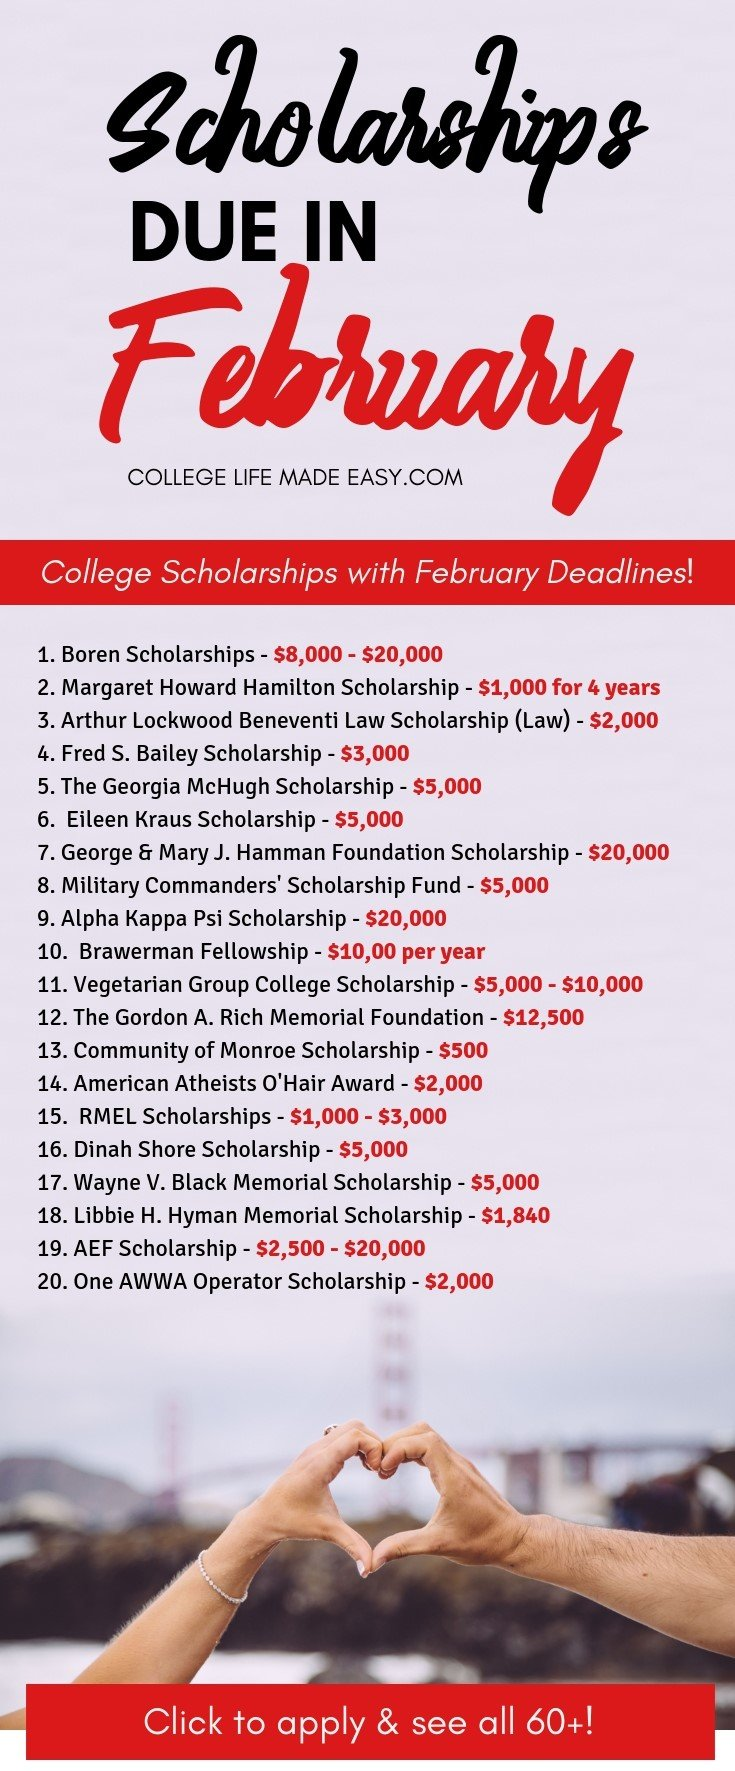 2019 college scholarships all with deadlines in February. Don't let these deadlines pass you by! There are scholarships for high school, undergraduate and graduate students. Click to see all 60+ opportunities! #scholarships #scholarship #college #collegelife #student #seniors #freshmen #gradschool